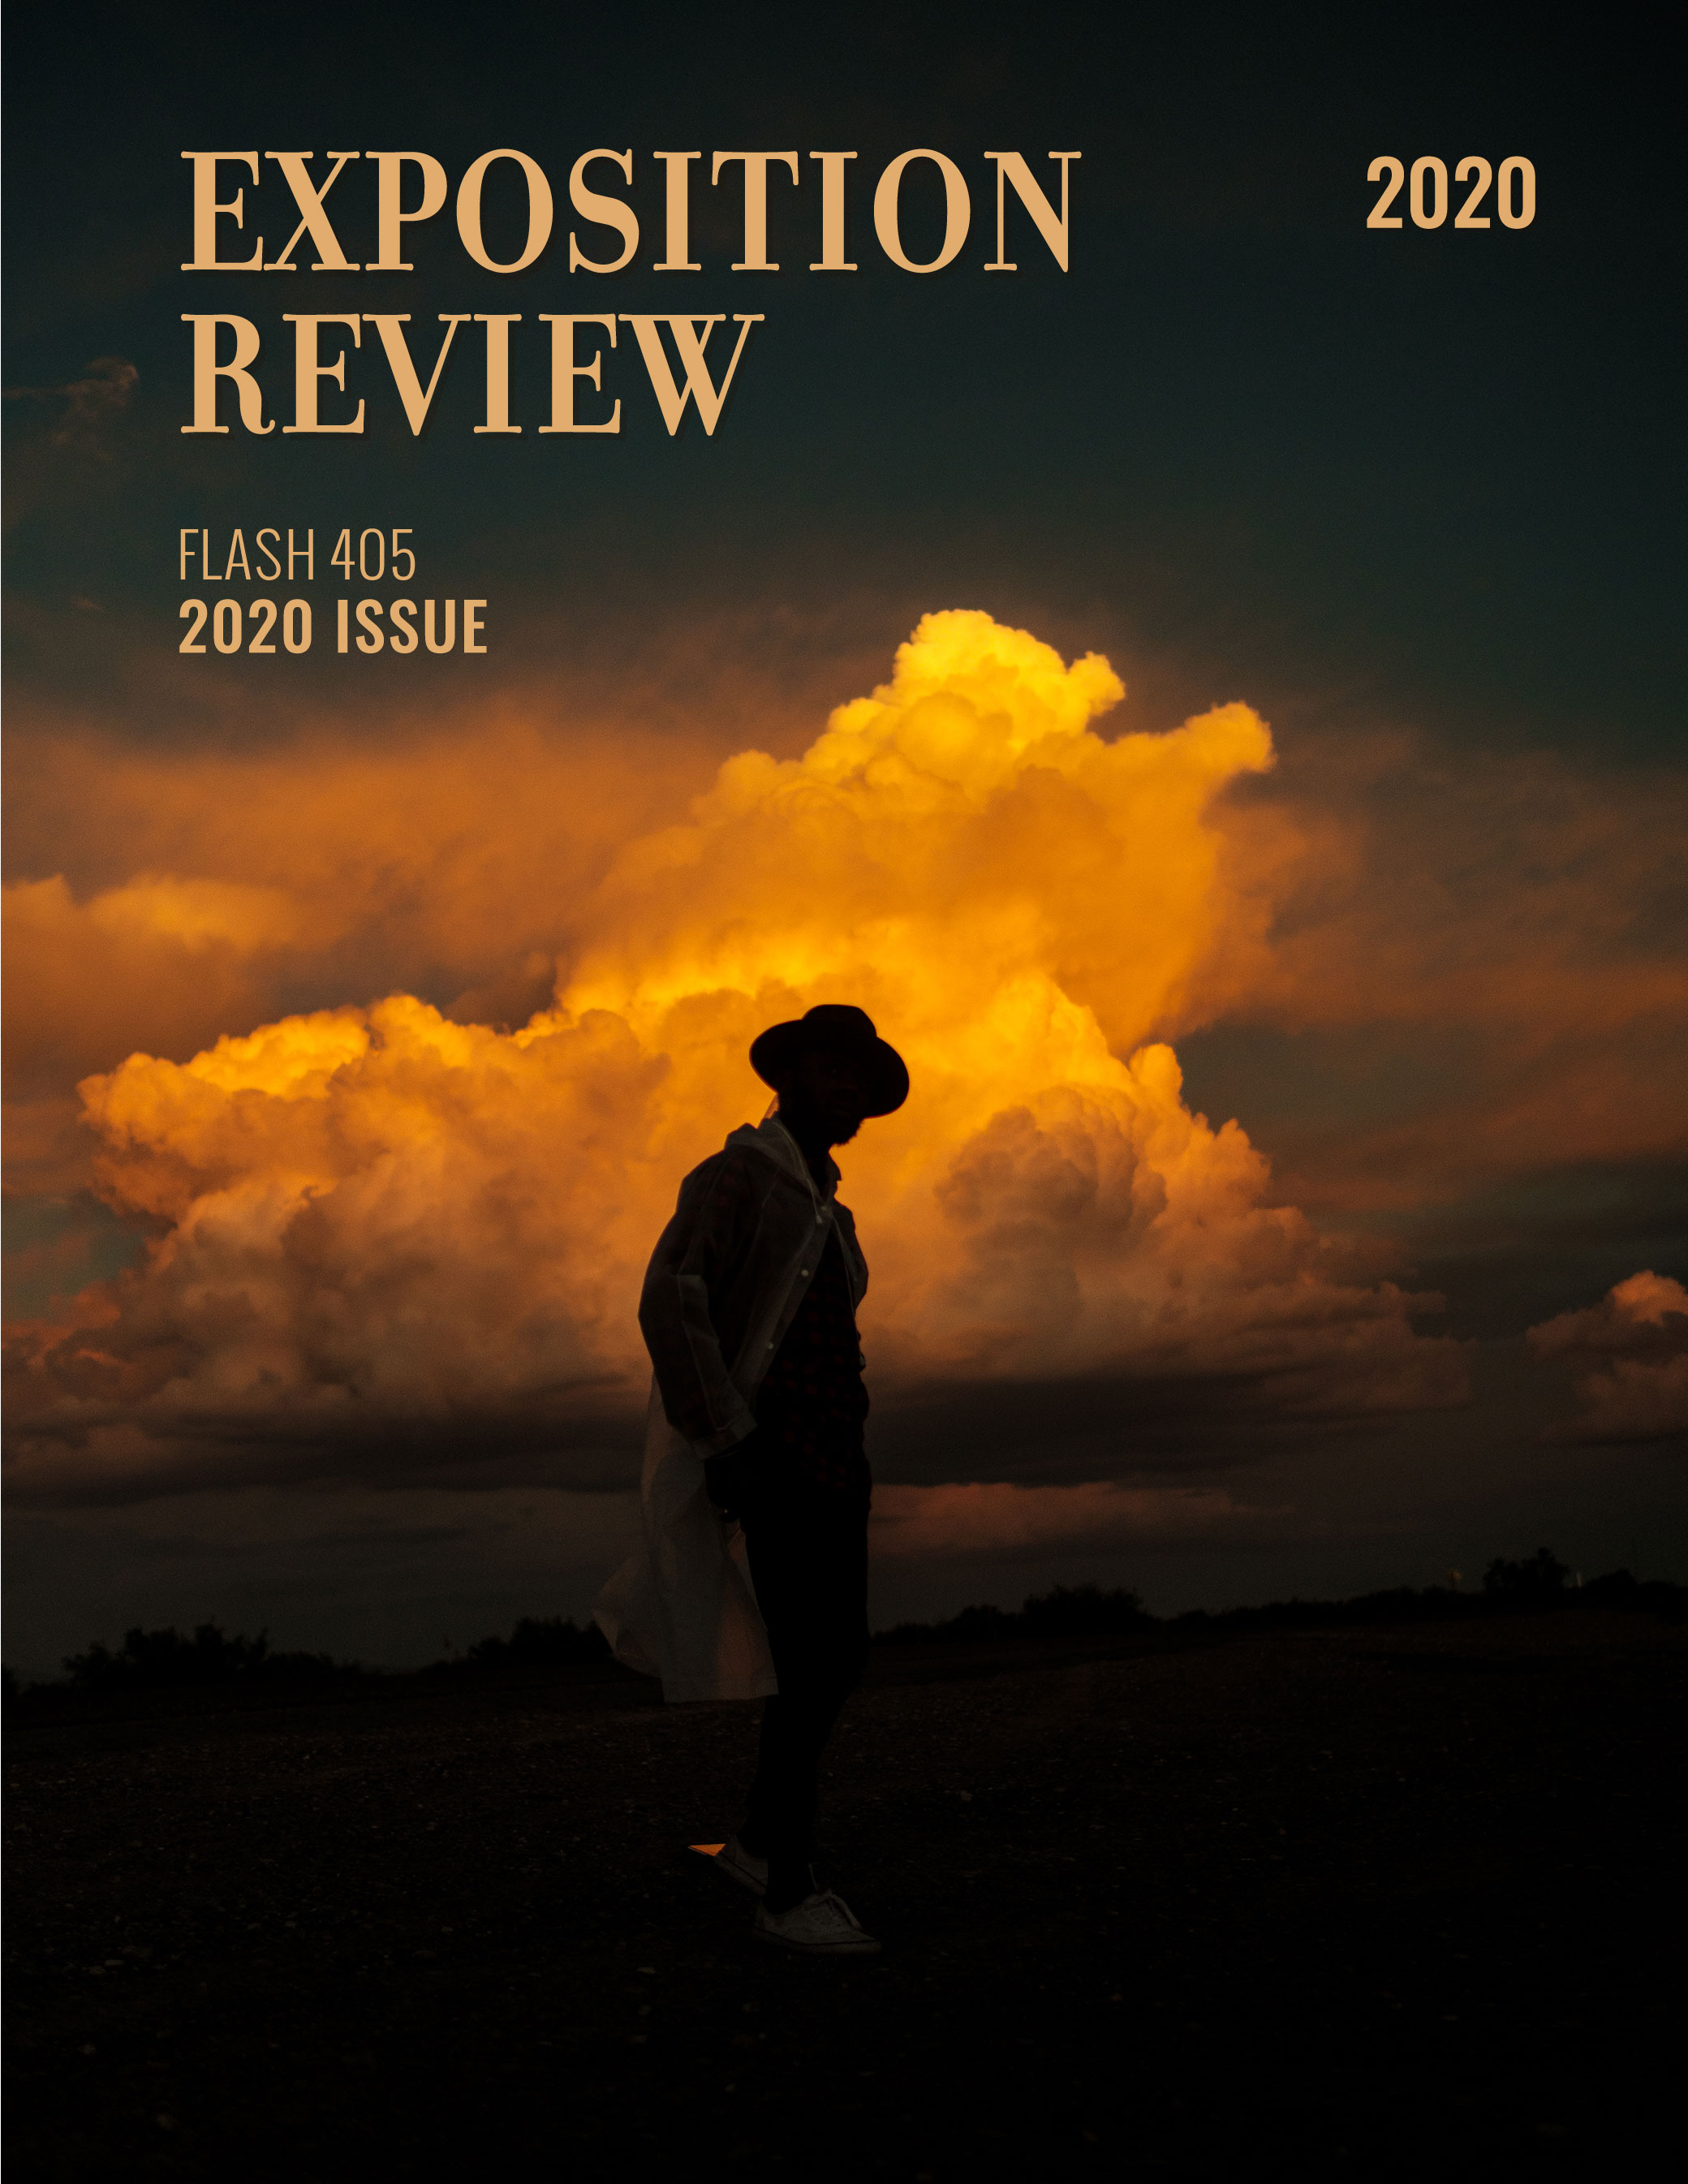 Exposition Review Flash 405 2020 Issue